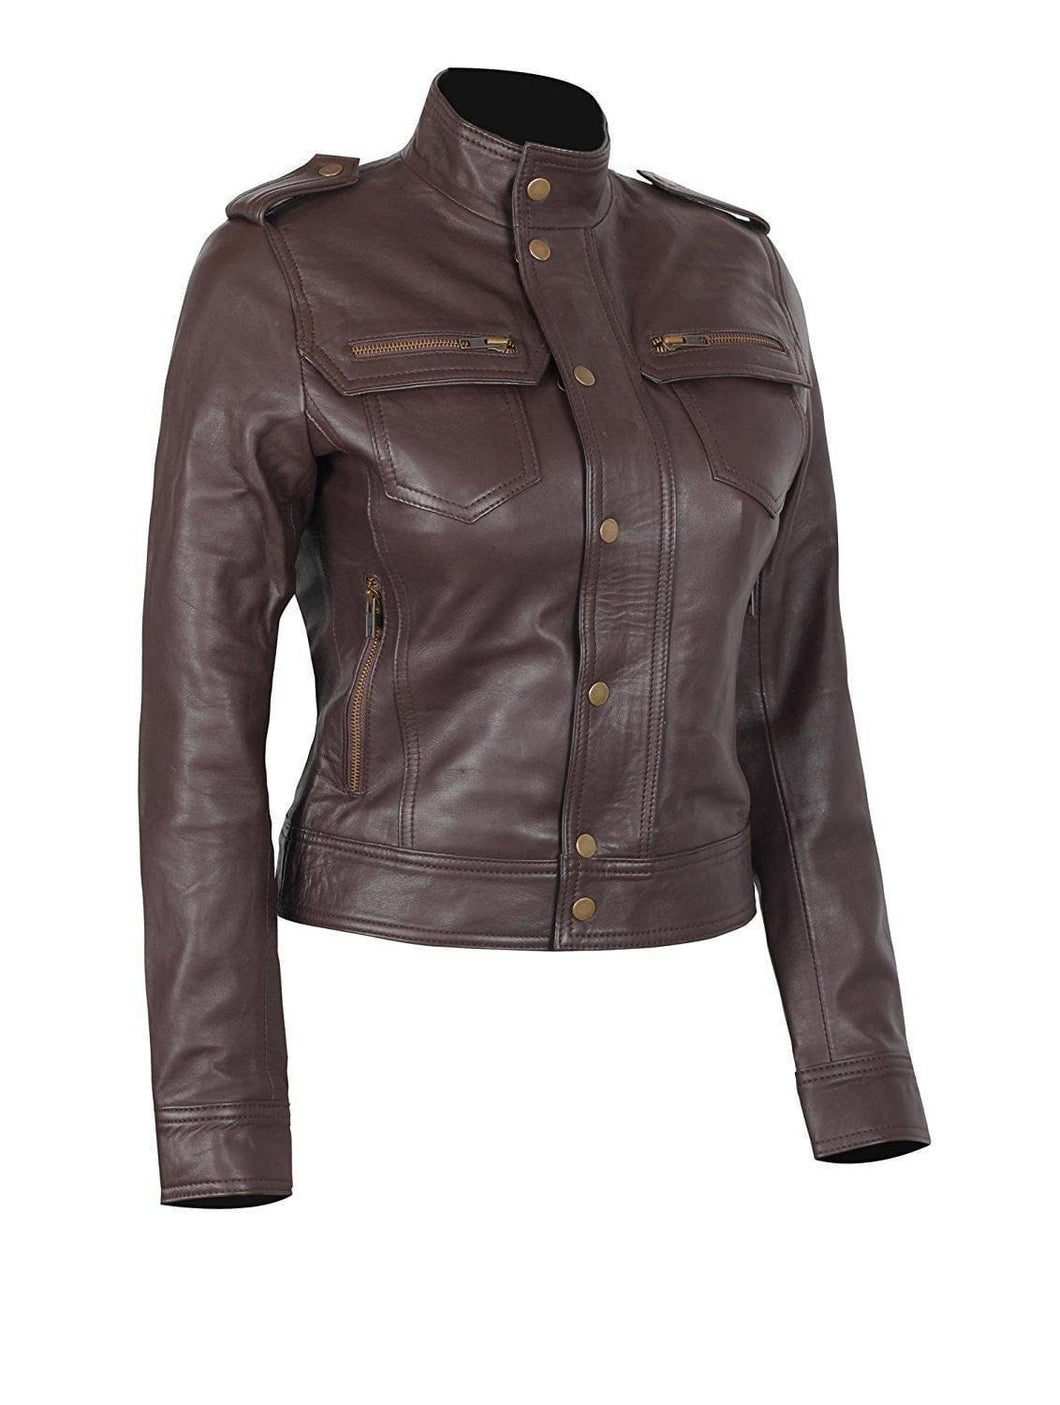 leather404 Clothing, Shoes & Accessories:women's Clothing:Coats & Jackets s Handmade Rise of The Tomb Raider Lara Croft Women's Brown Leather Jacket